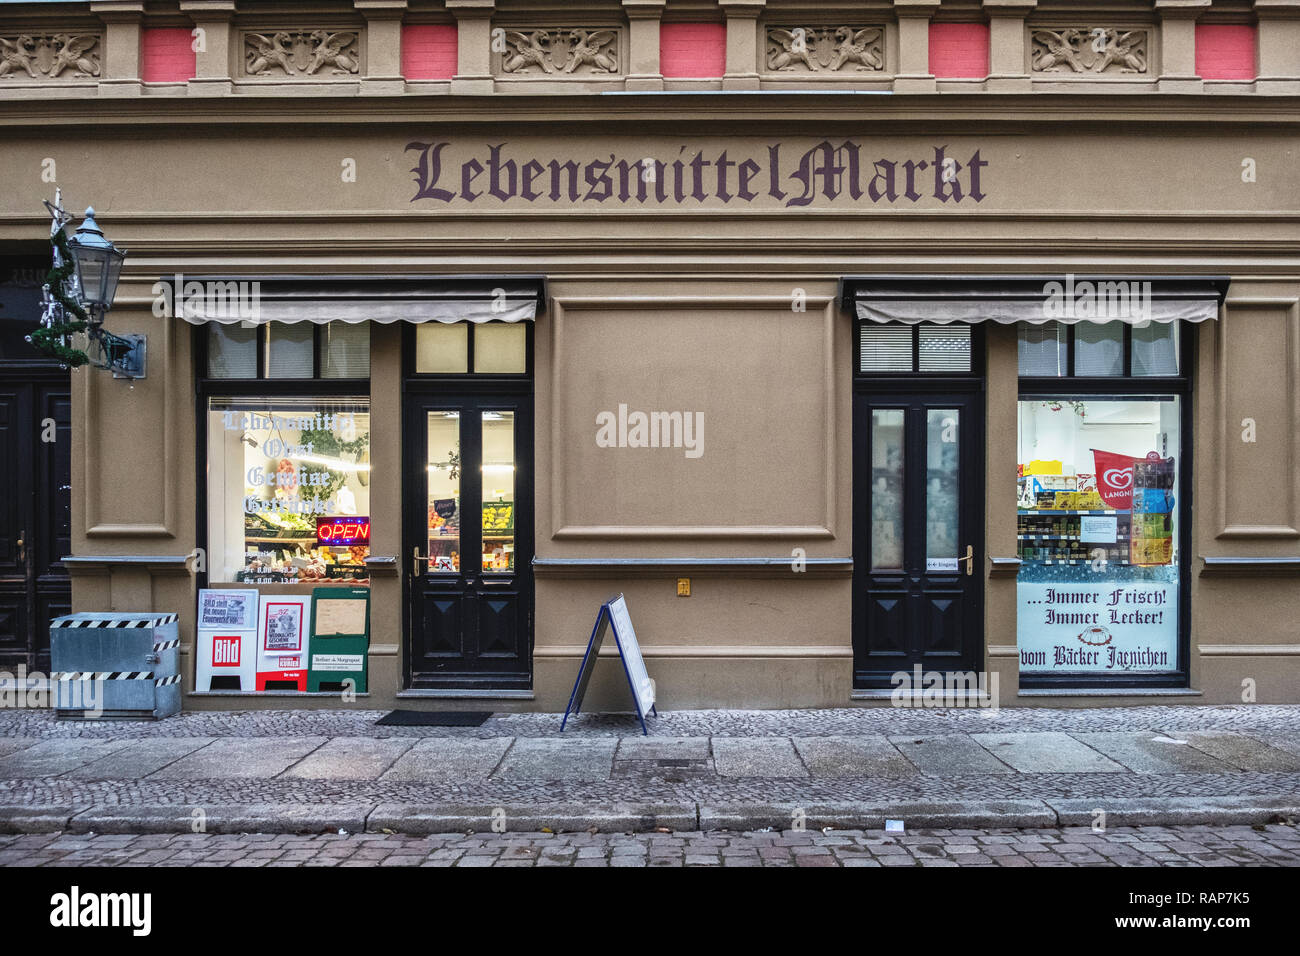 Alt-Köpenick,Berlin,Lebensmittel Markt grocery store in old building the the historic old town - Stock Image